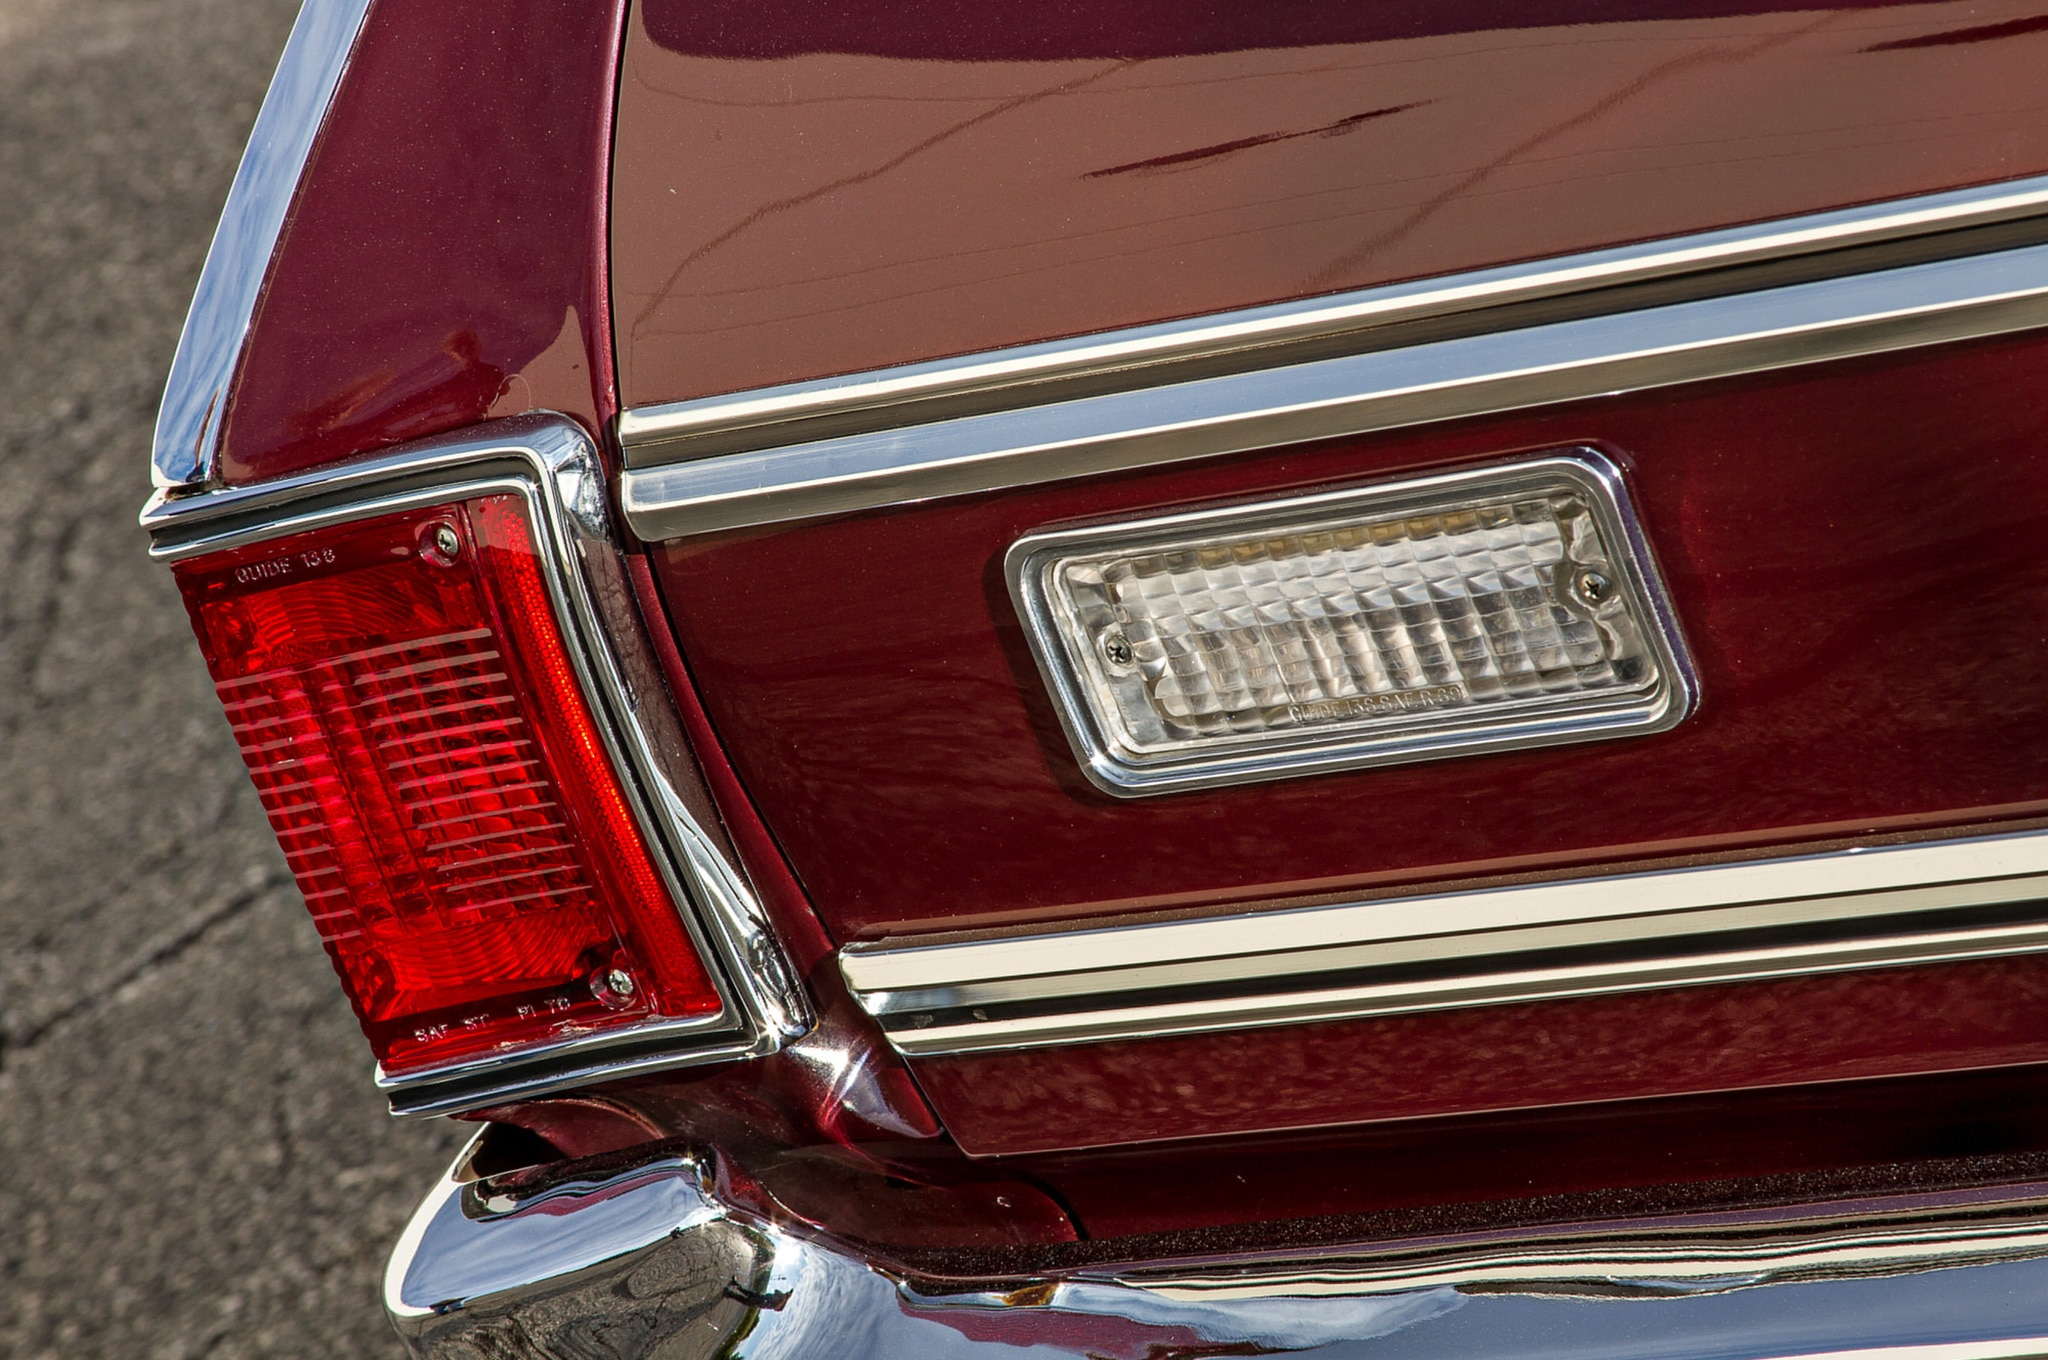 1970 El Camino Led Tail Lights How One Enthusiast Built A 500 Hp 1970 Chevrolet El Camino Ss